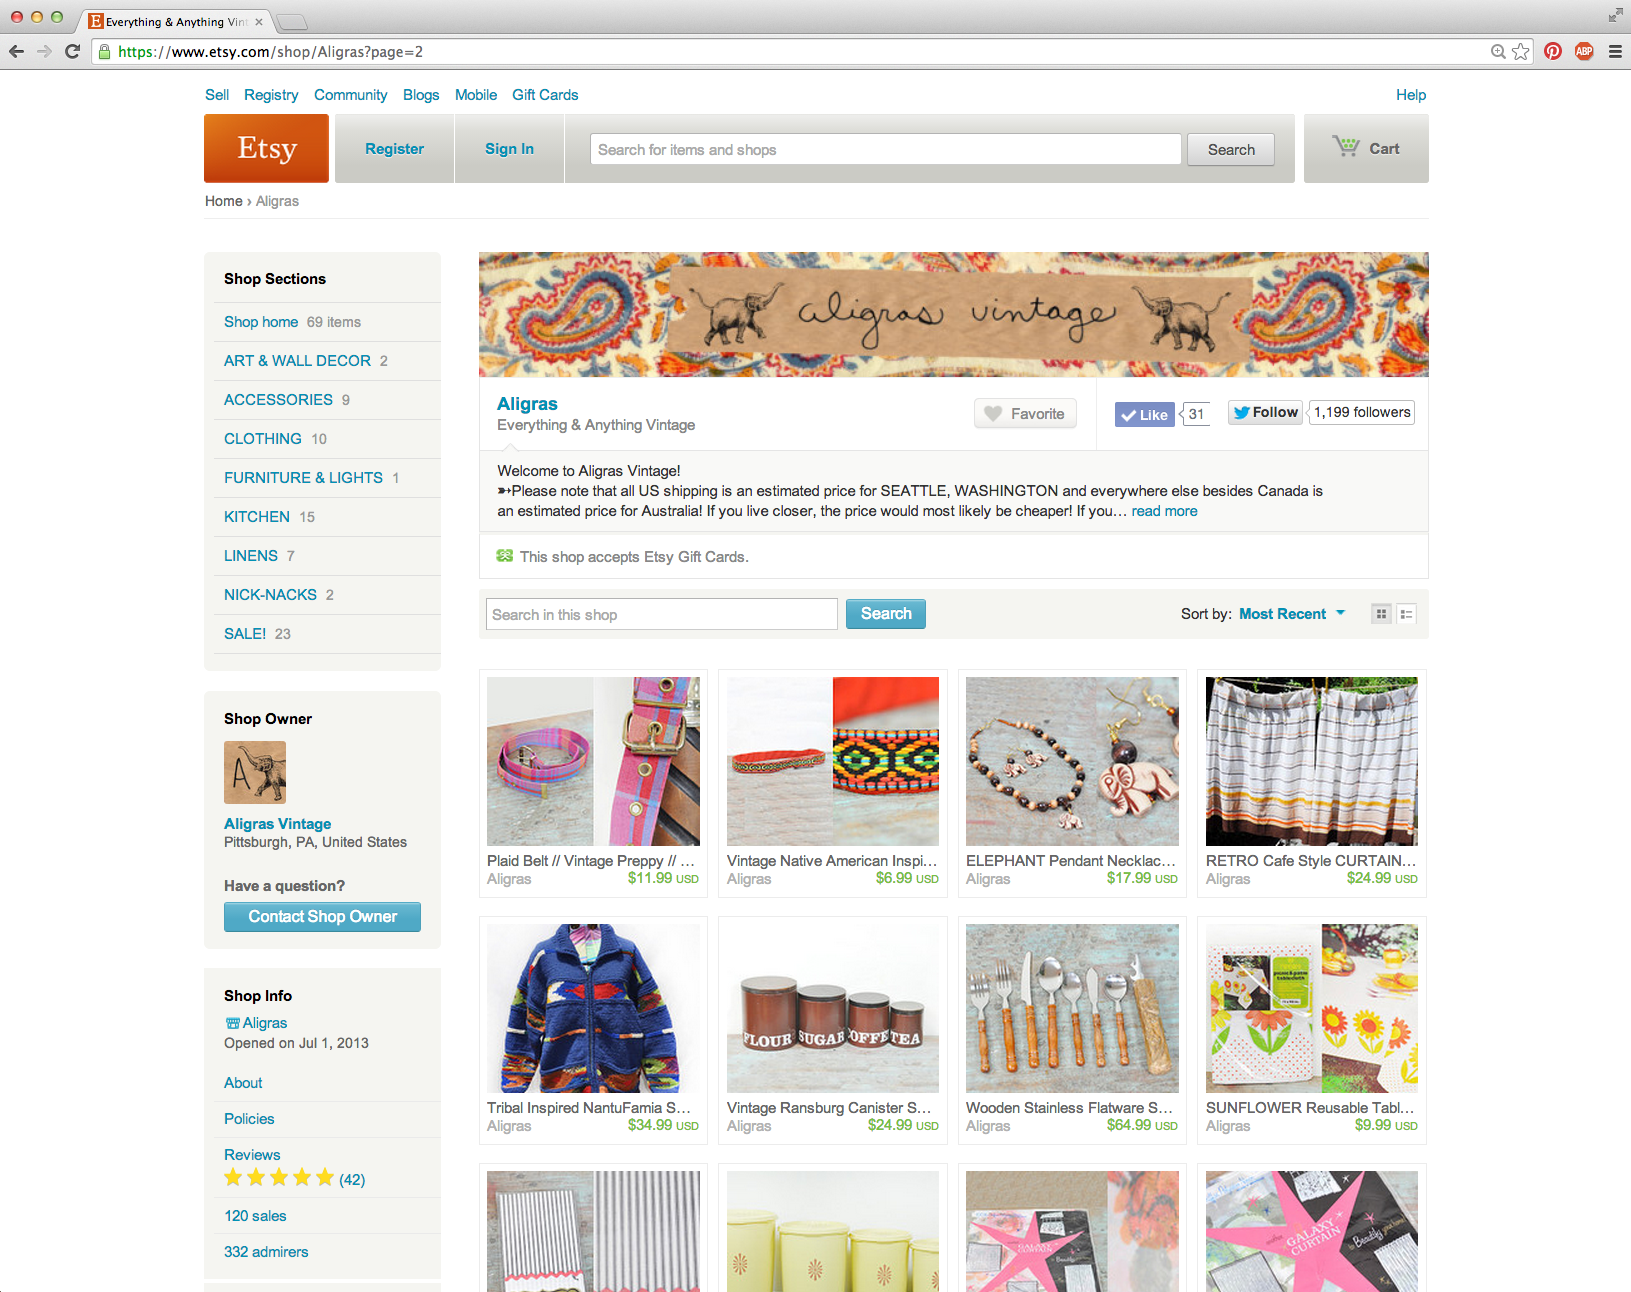 screenshot of Etsy page